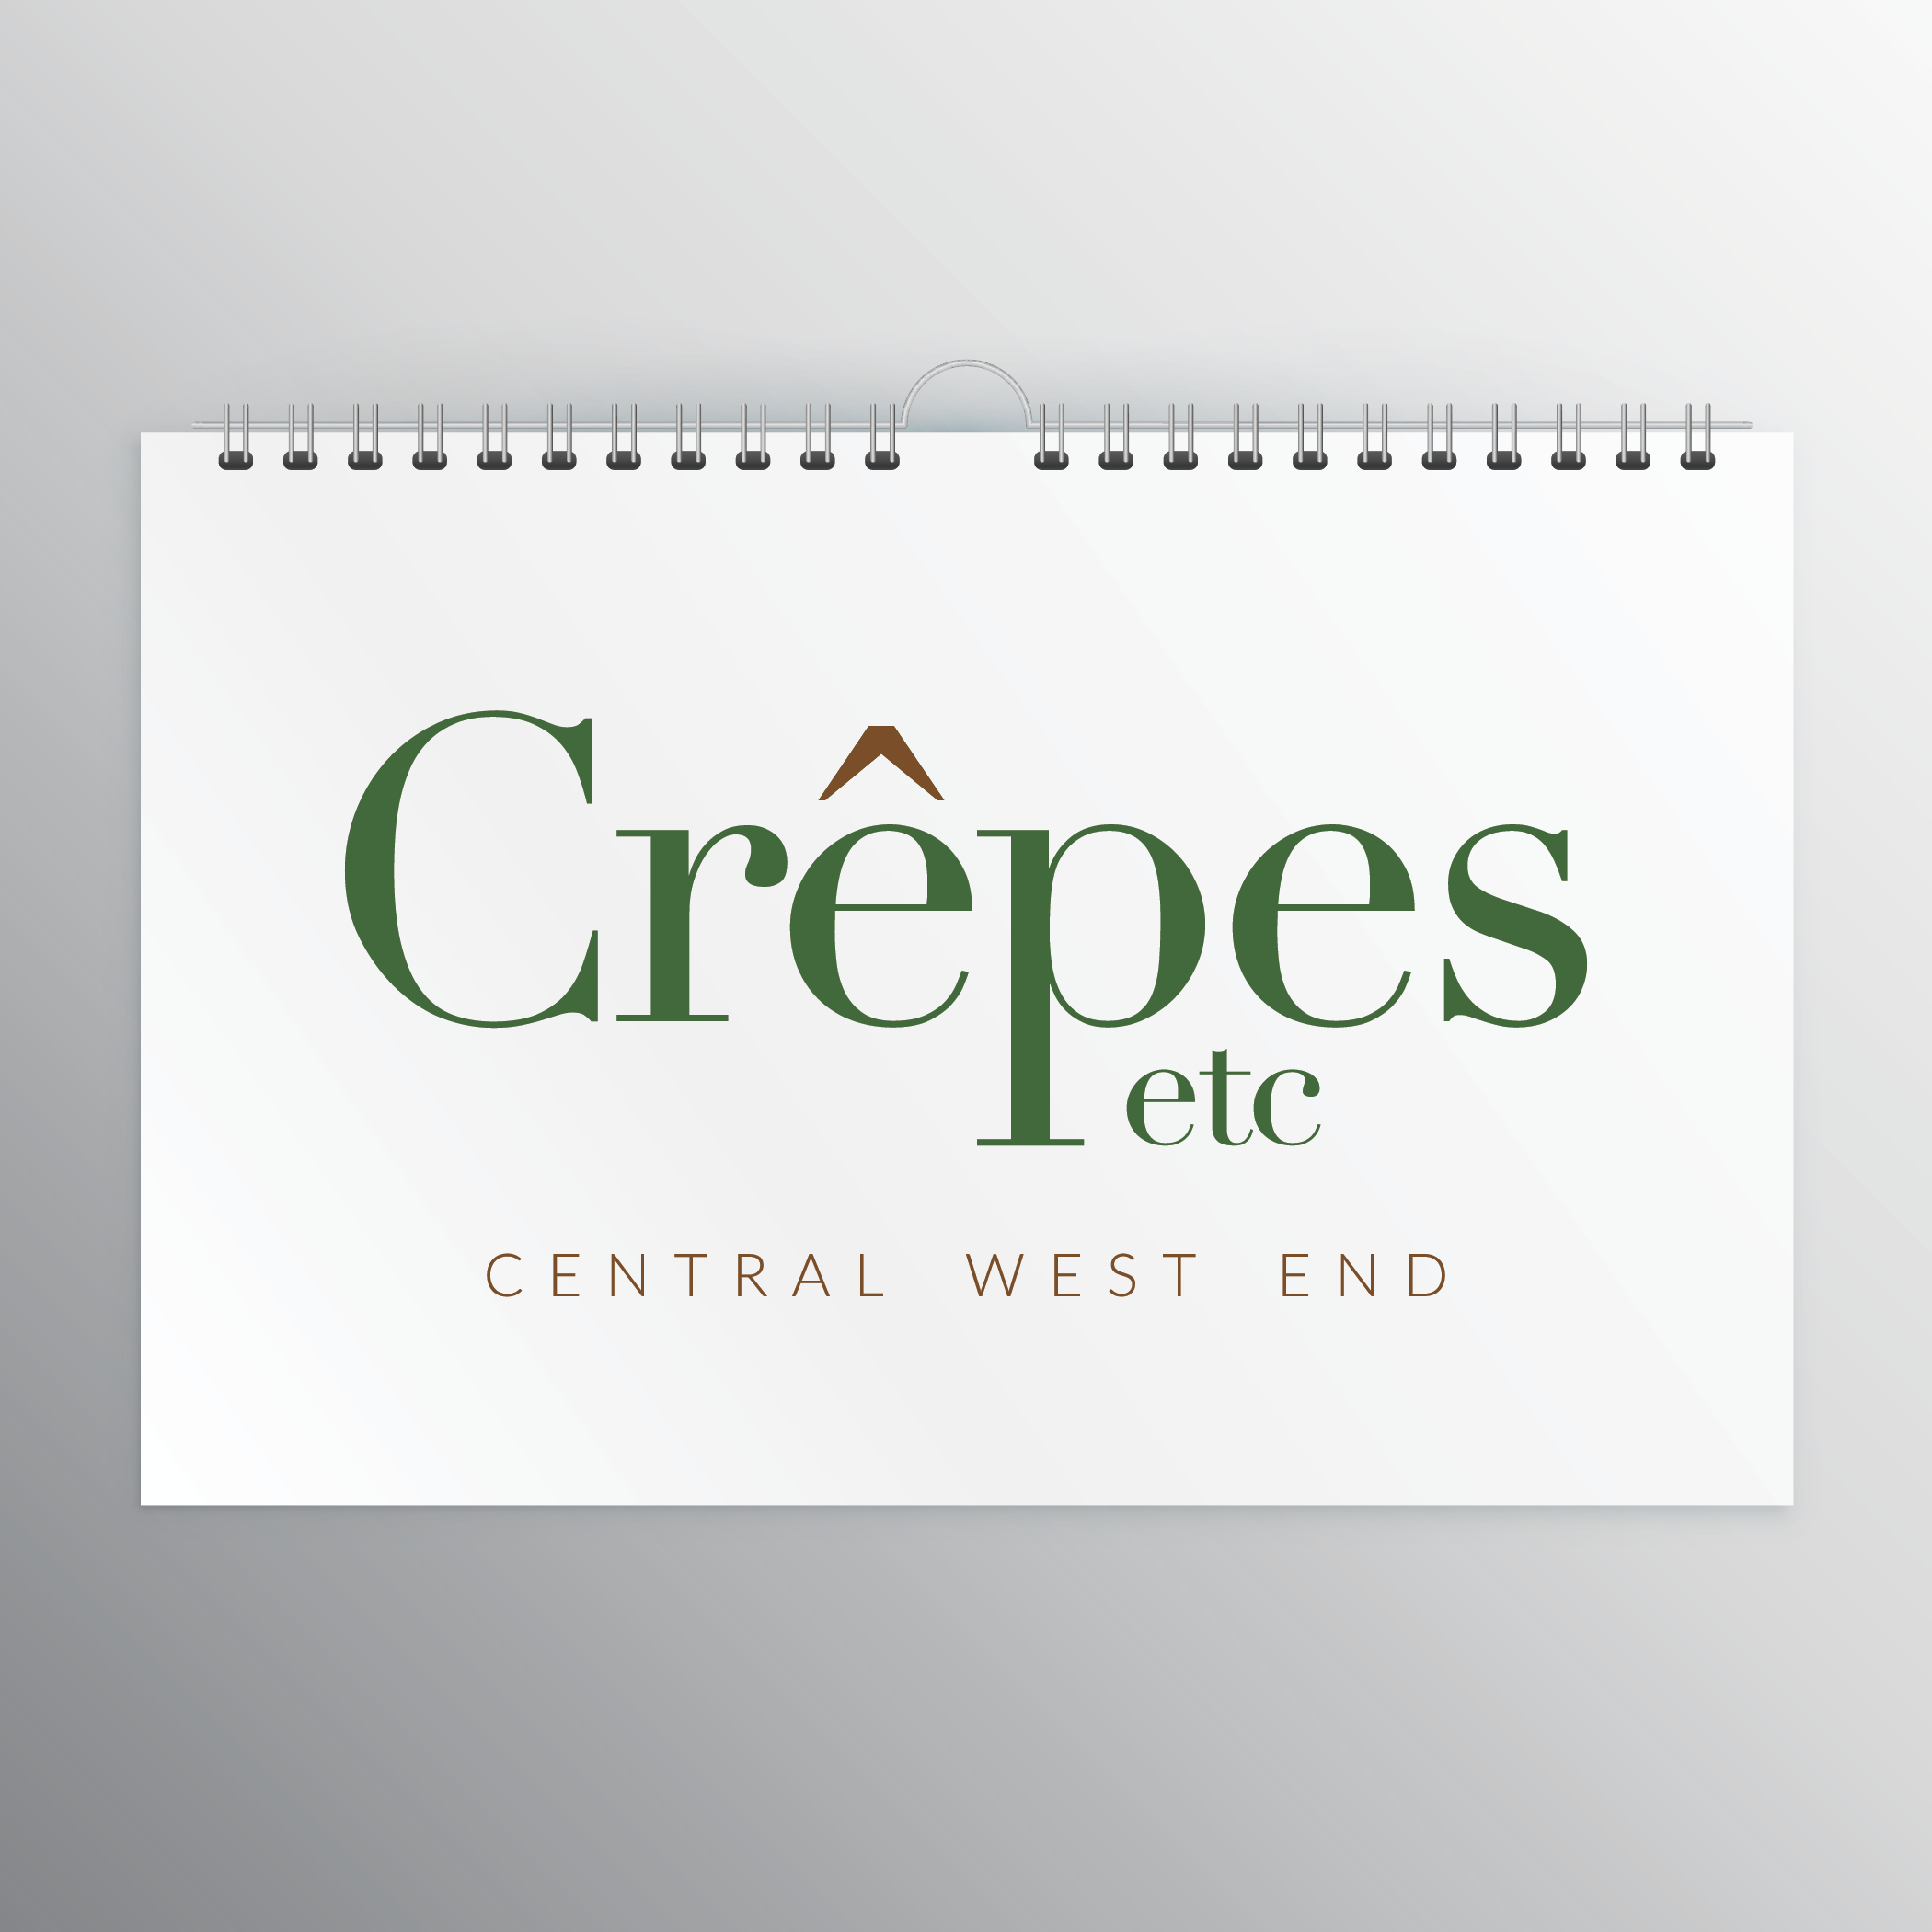 Crepes etc Logo